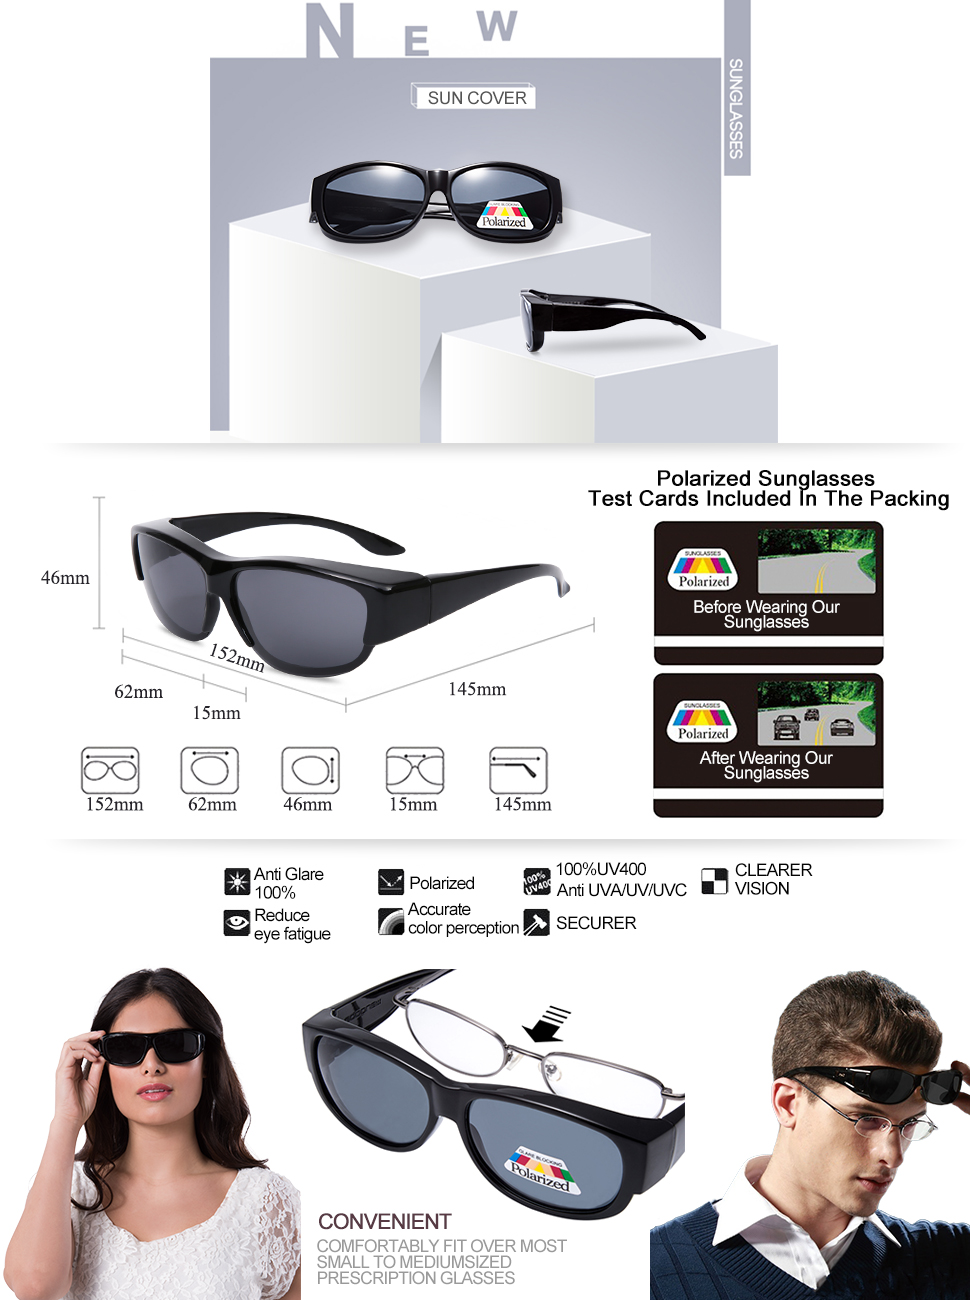 1 pair of black sun cover for women at 1 low price. The sunglasses can be put  over your prescription glasses to protect your eyes from UV outdoor. 003f0e4c2